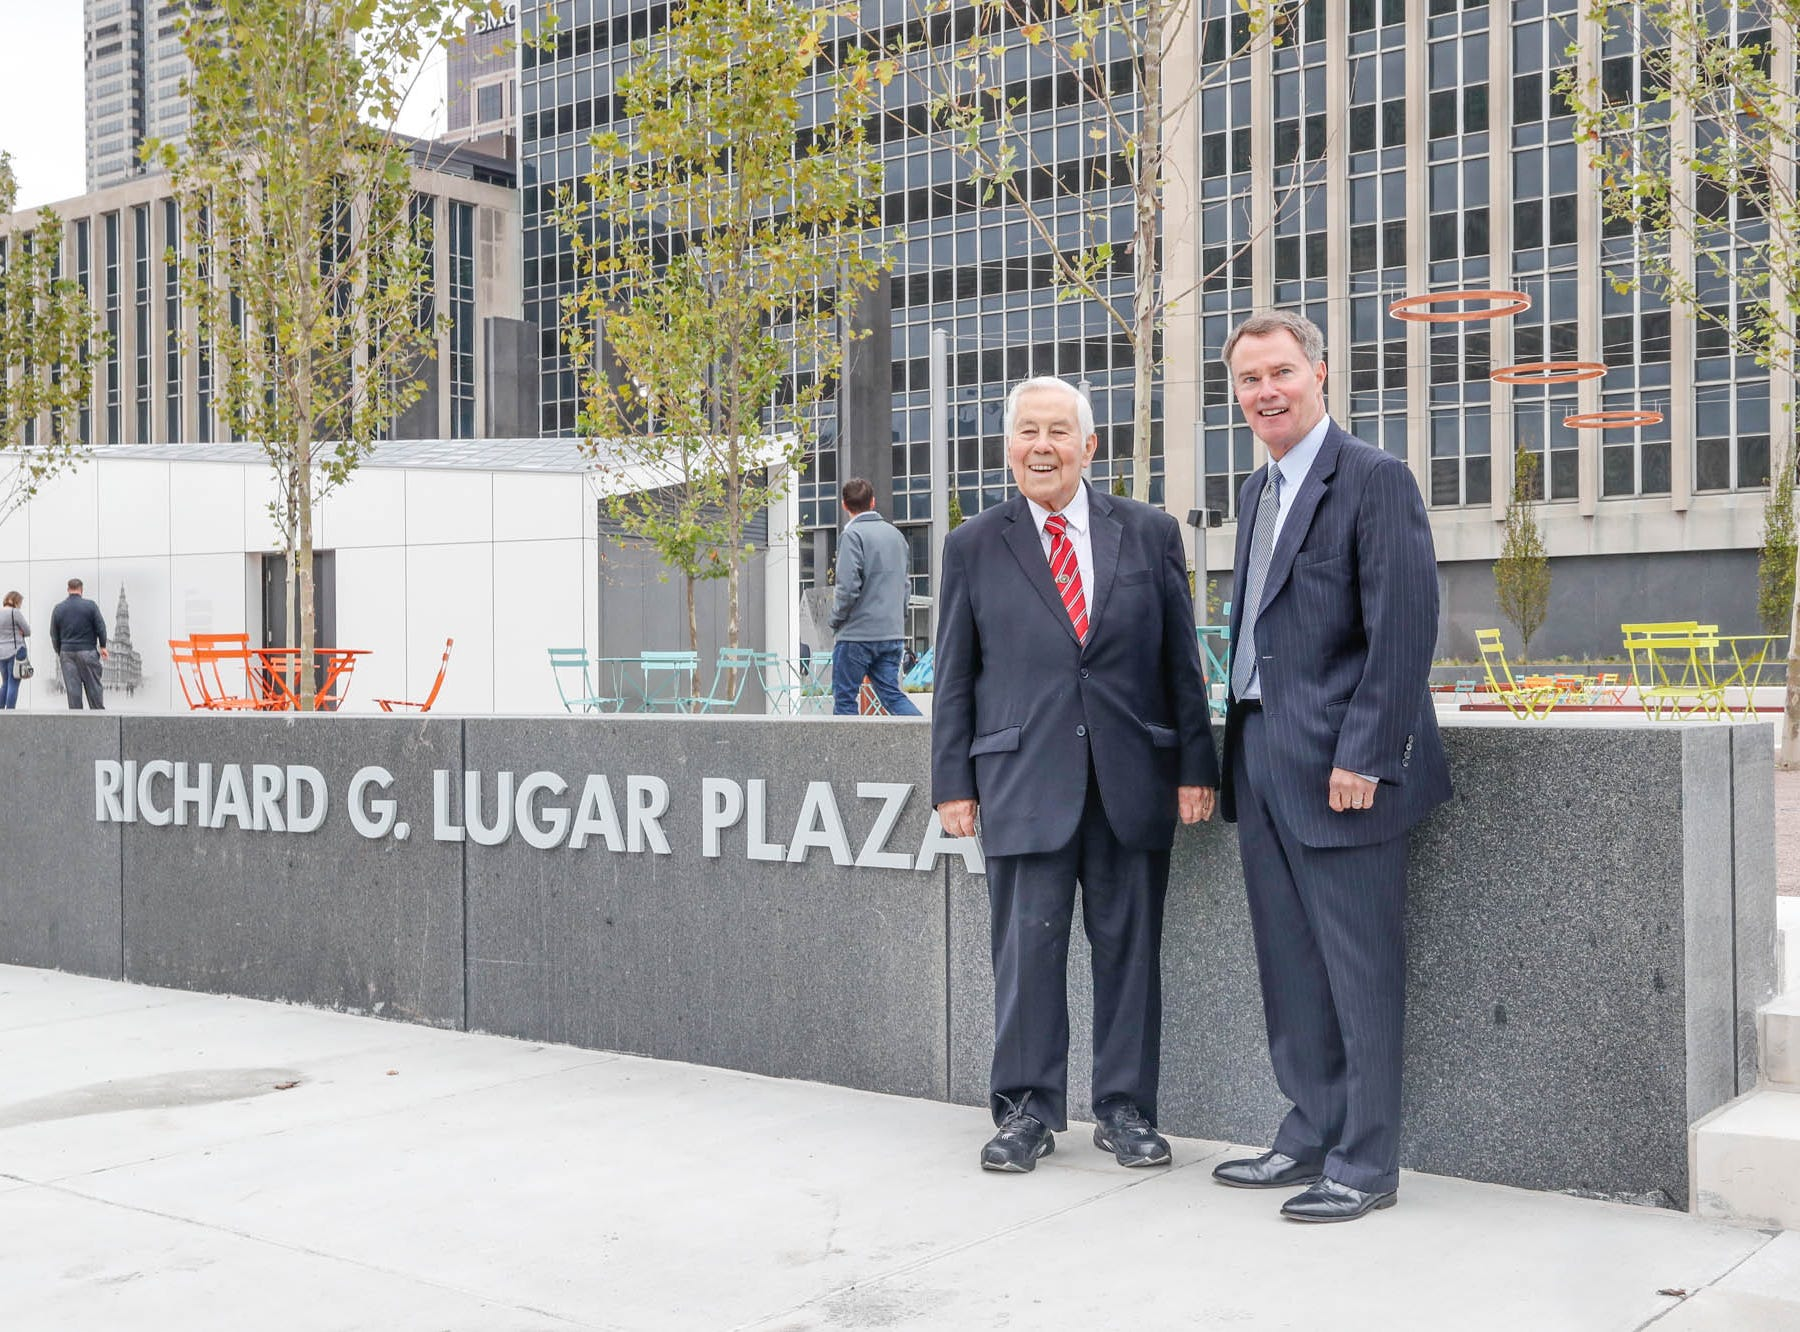 Former Senator and Mayor, Richard Lugar, left, and current Mayor of Indianapolis, Joe Hogsett,  stand for a photo during the reopening and dedication of Richard G. Lugar Plaza at the City-County Building in Indianapolis on Thursday, Oct. 11, 2018.